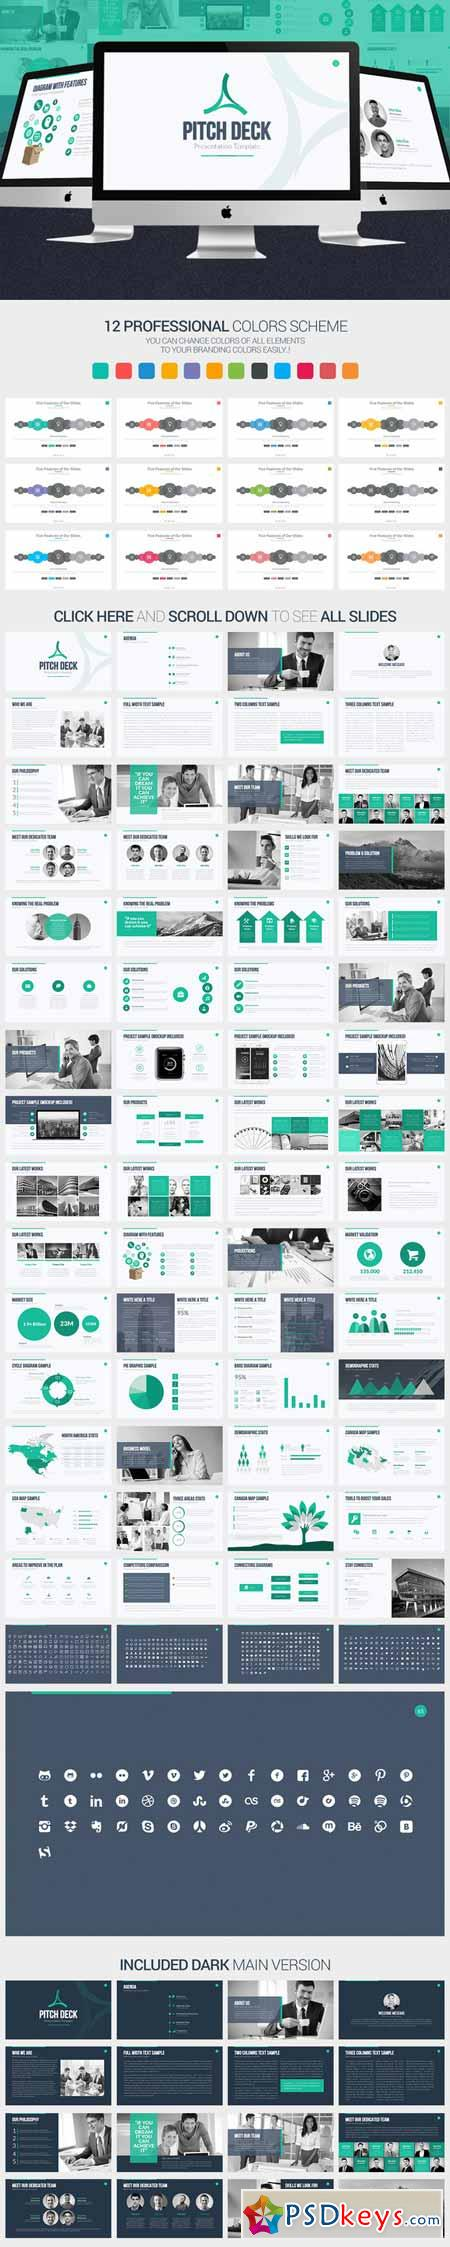 Pitch deck powerpoint template 375469 free download photoshop pitch deck powerpoint template 375469 alramifo Images